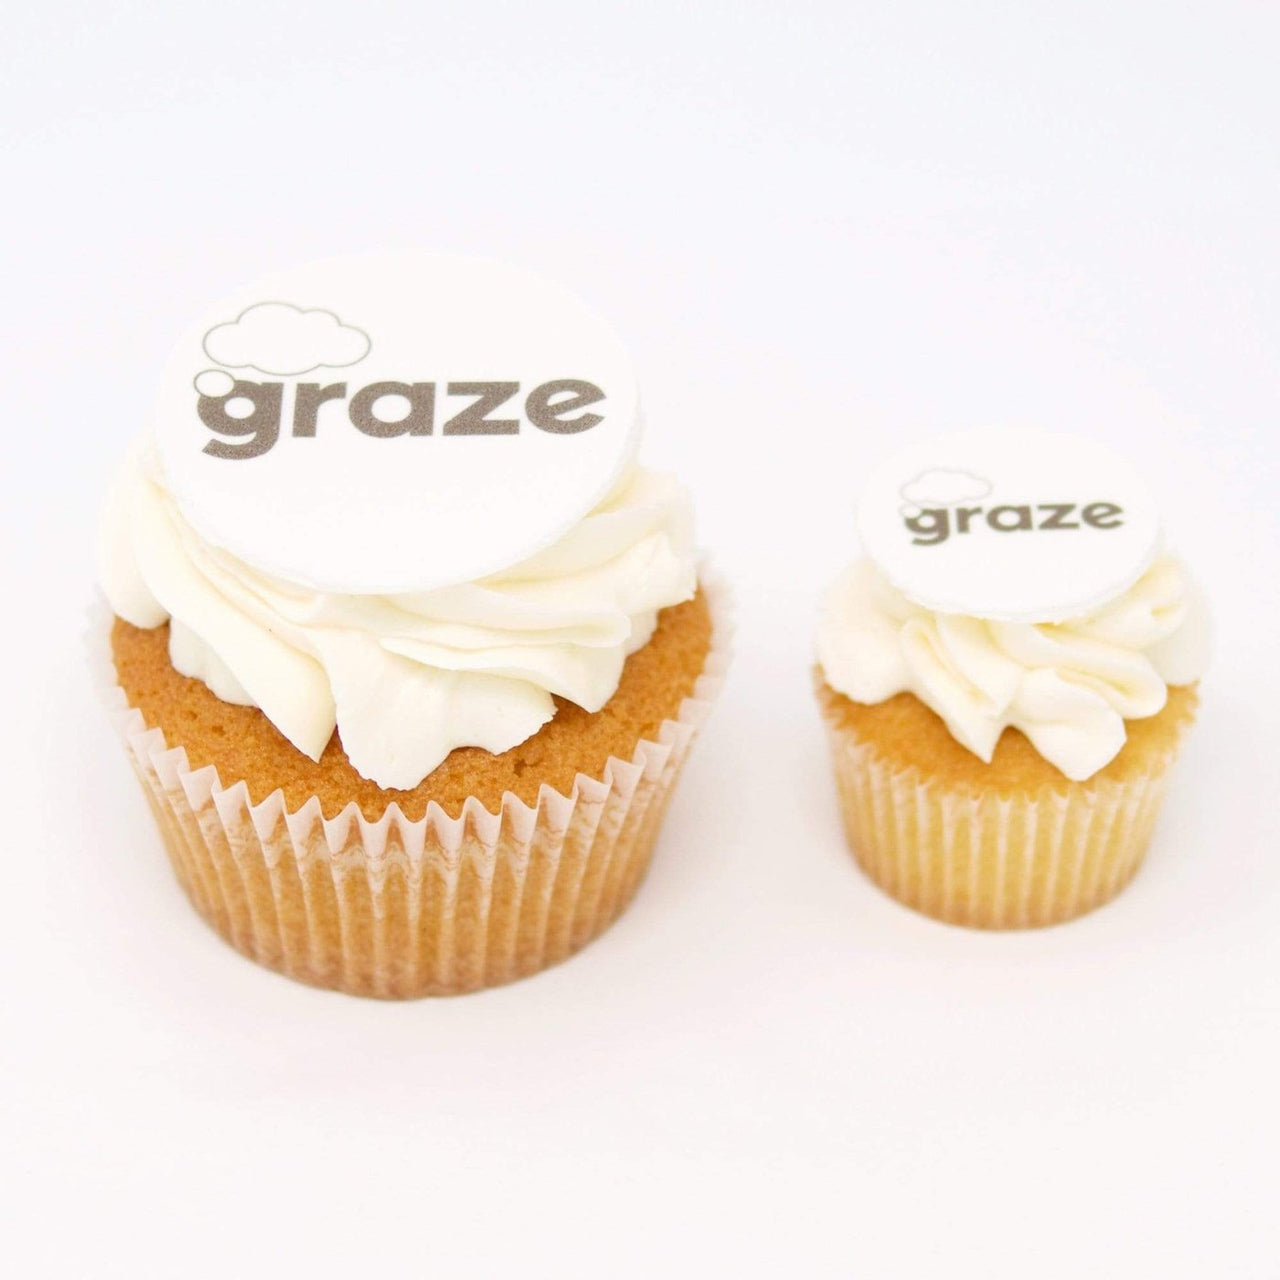 Gluten free branded cupcakes